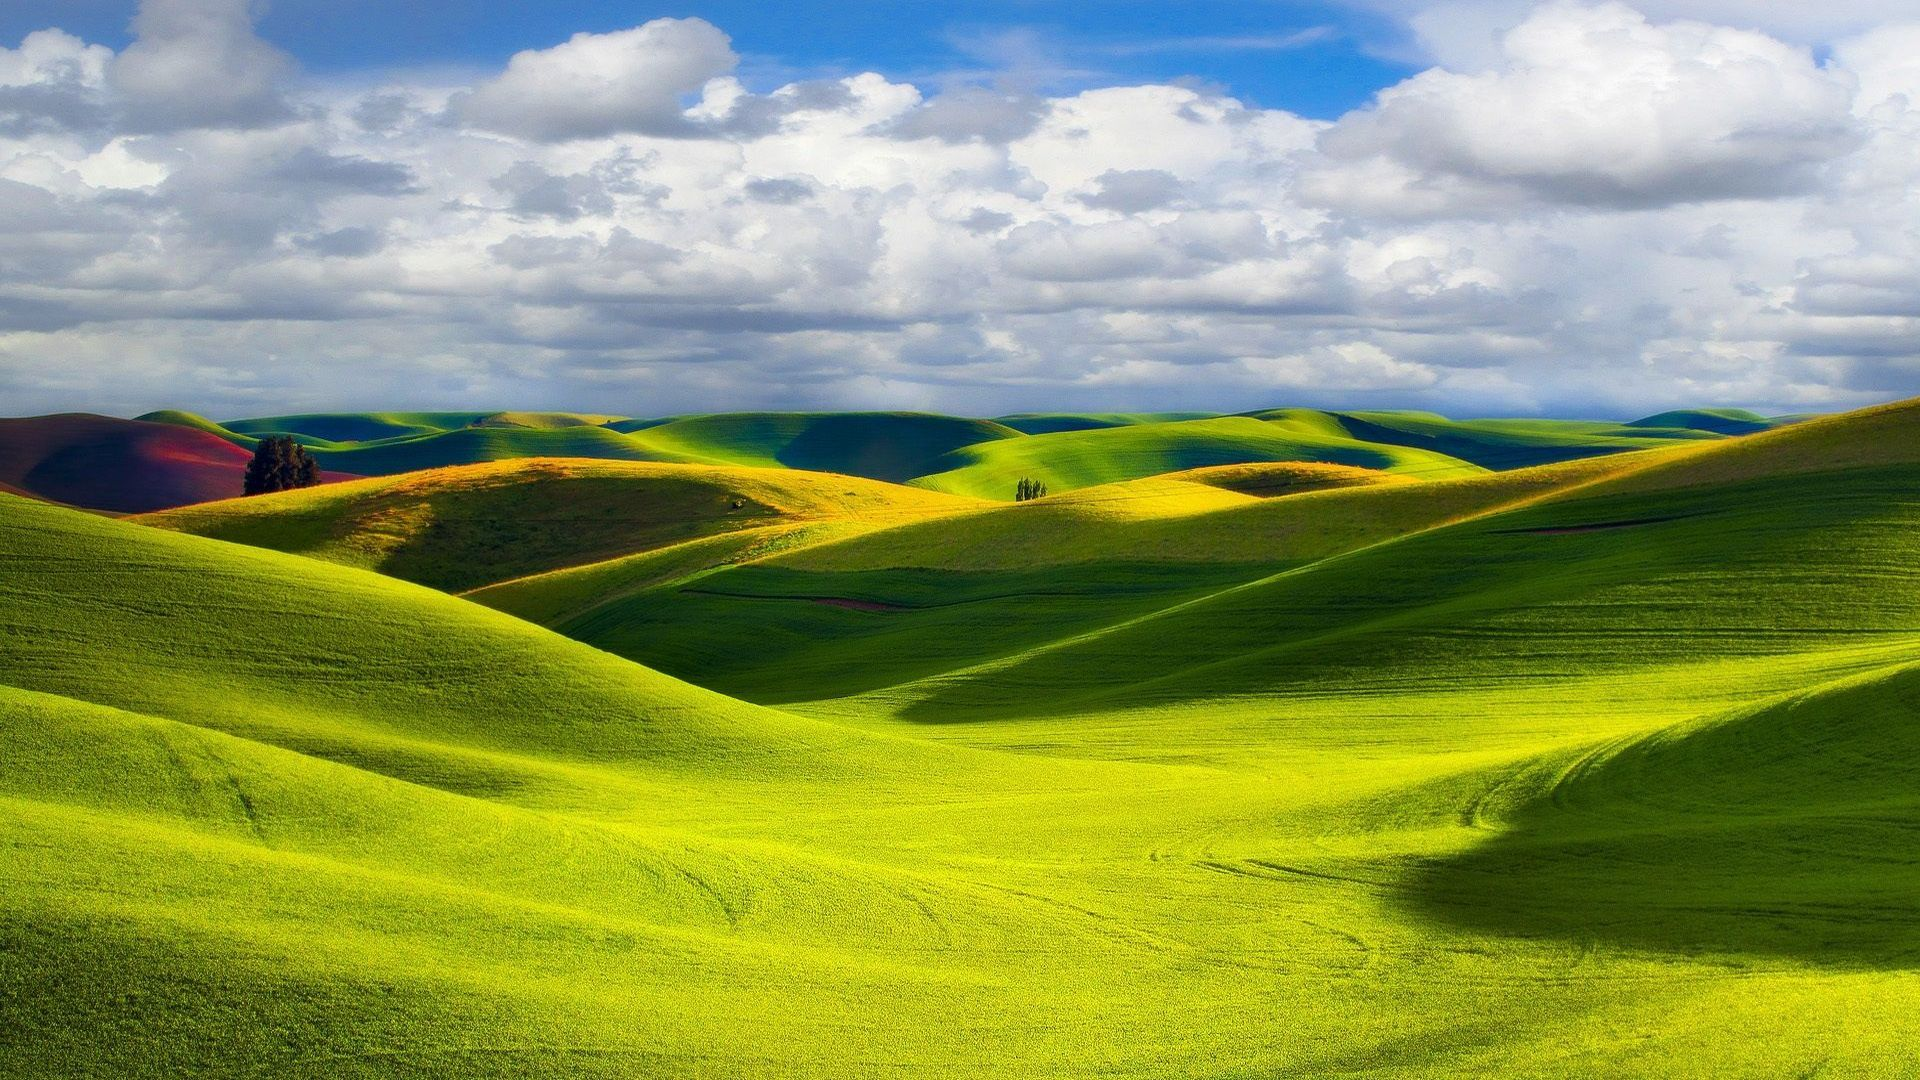 Hills Hd picture free download